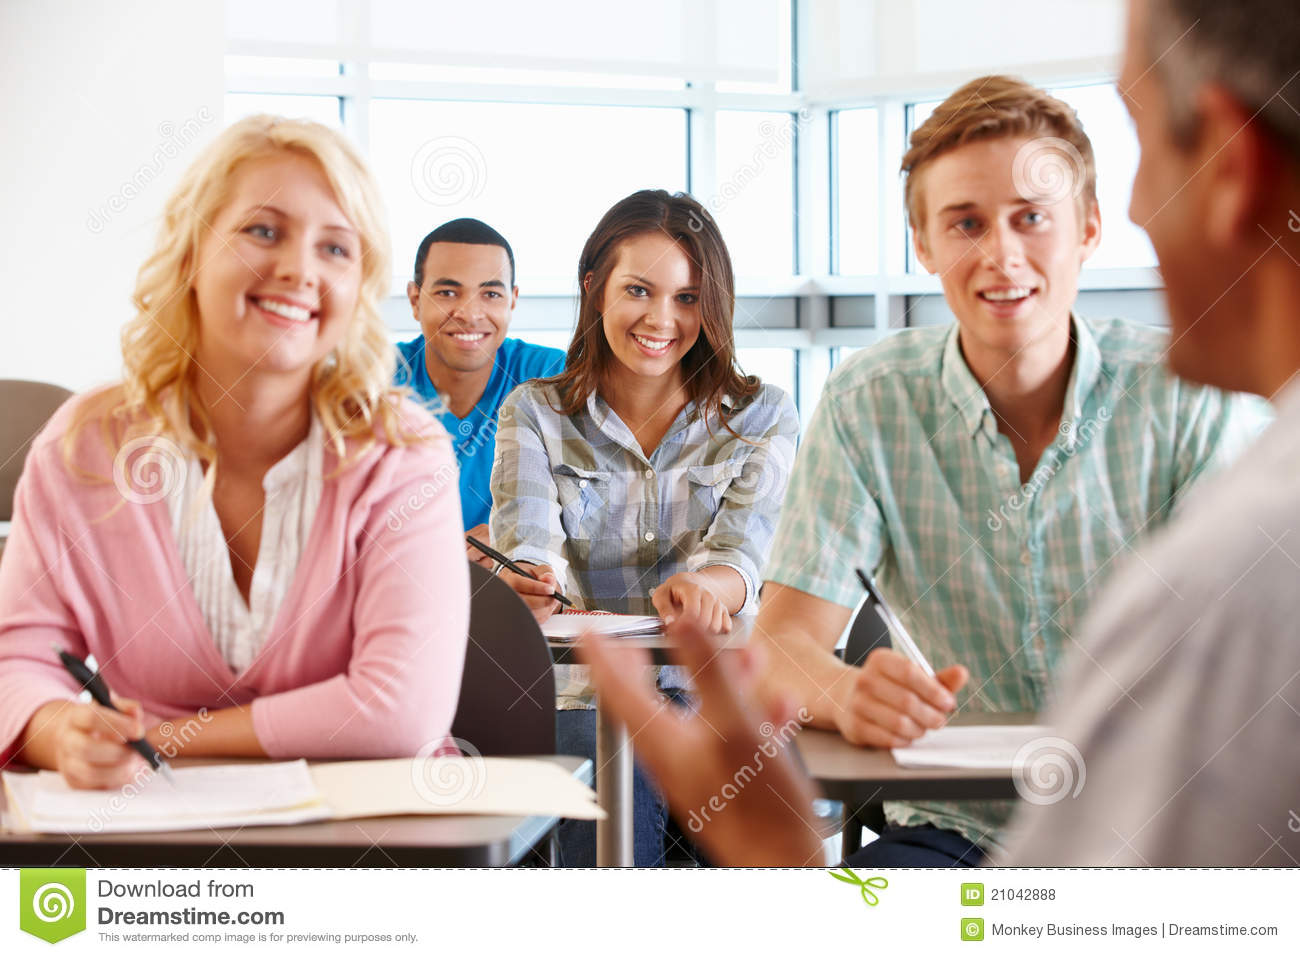 how to teach the students in the class